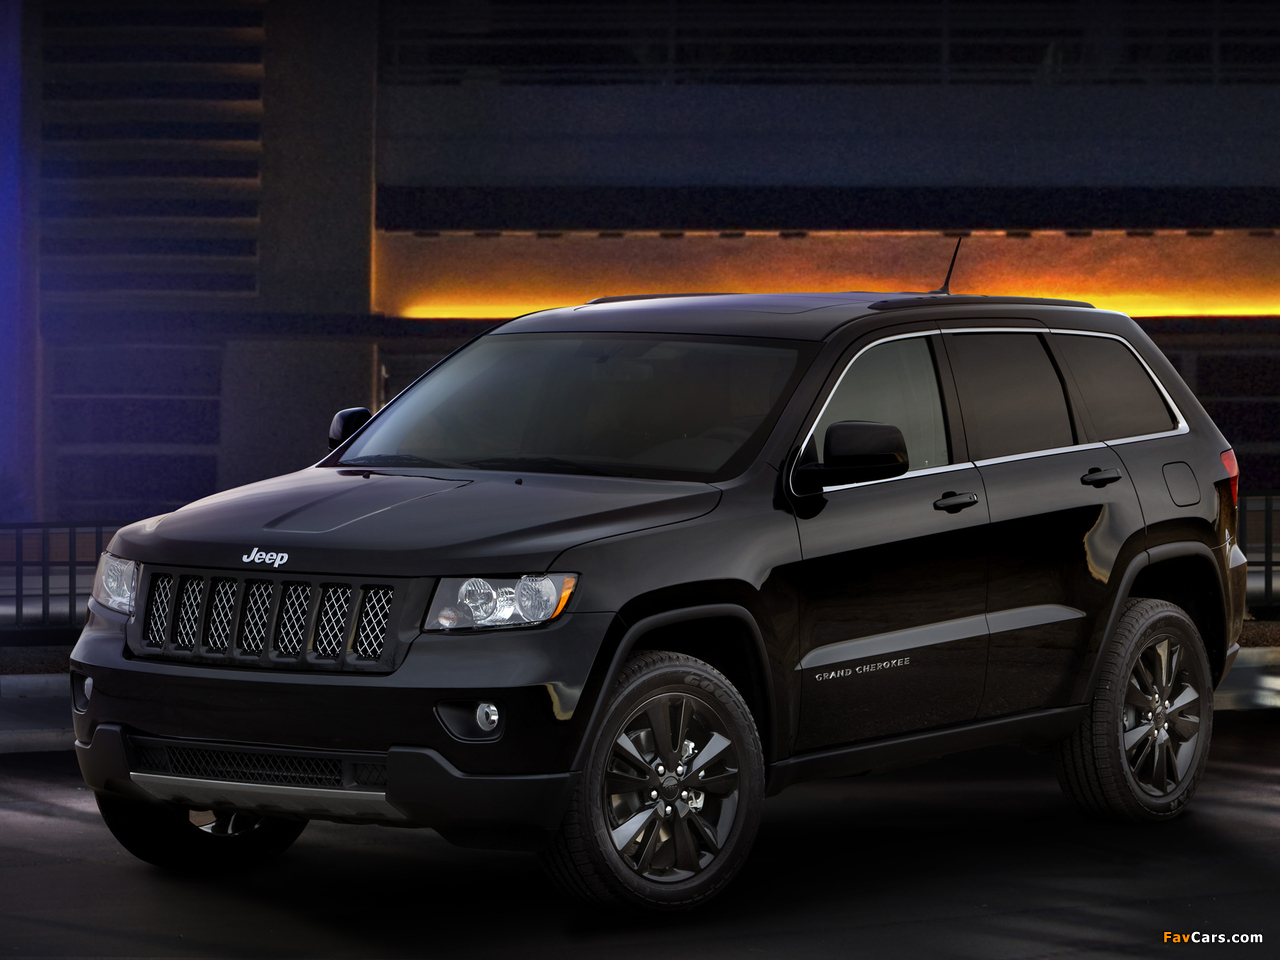 service manual 2012 jeep grand cherokee wk2 jeep grand cherokee specs 2010 2011 2012 2013. Black Bedroom Furniture Sets. Home Design Ideas